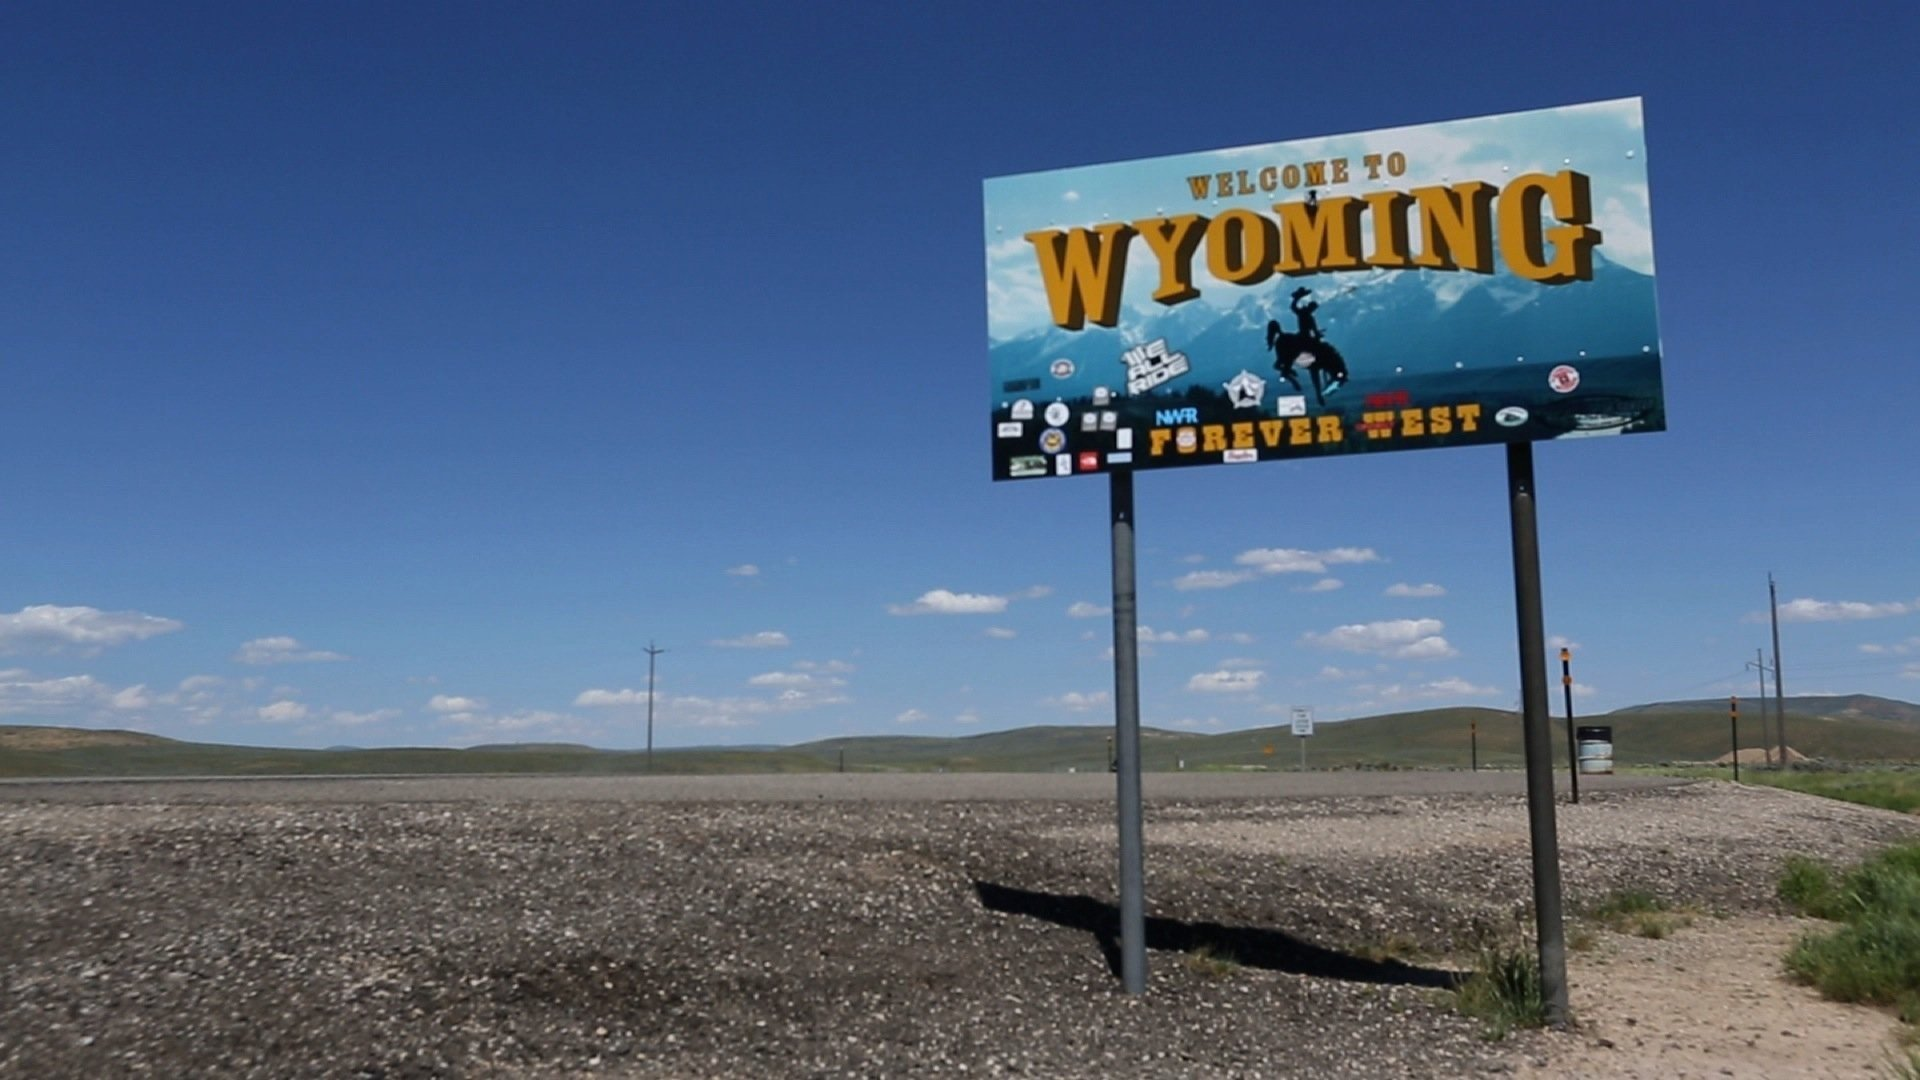 Sanders Wins Wyoming to Extend Victory Run